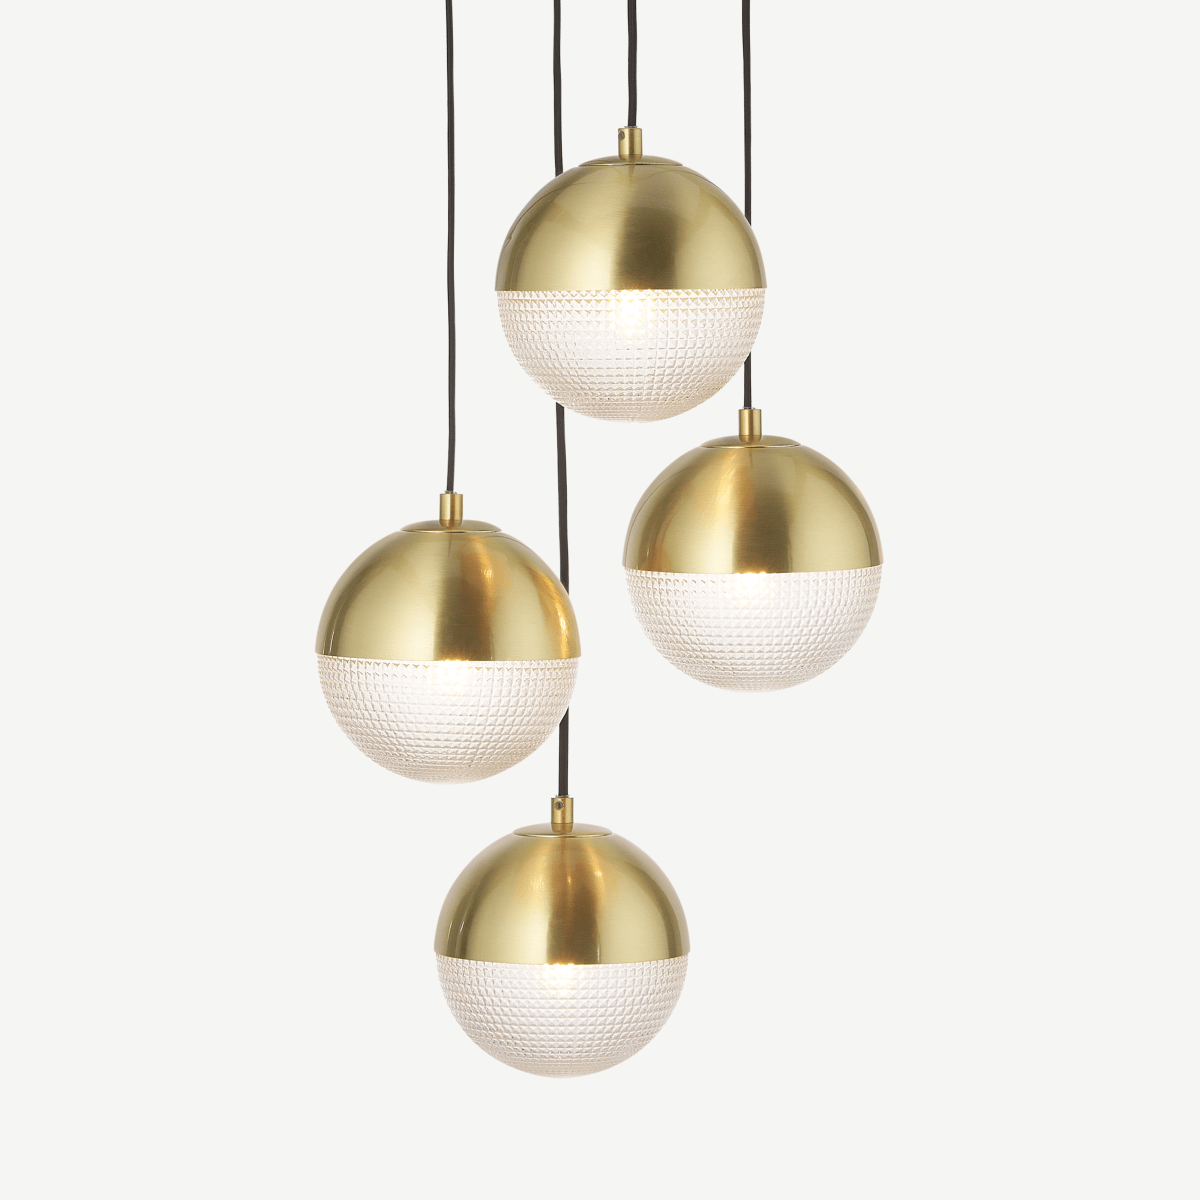 Cher Cluster Pendant Lamp, Textured Glass & Brass